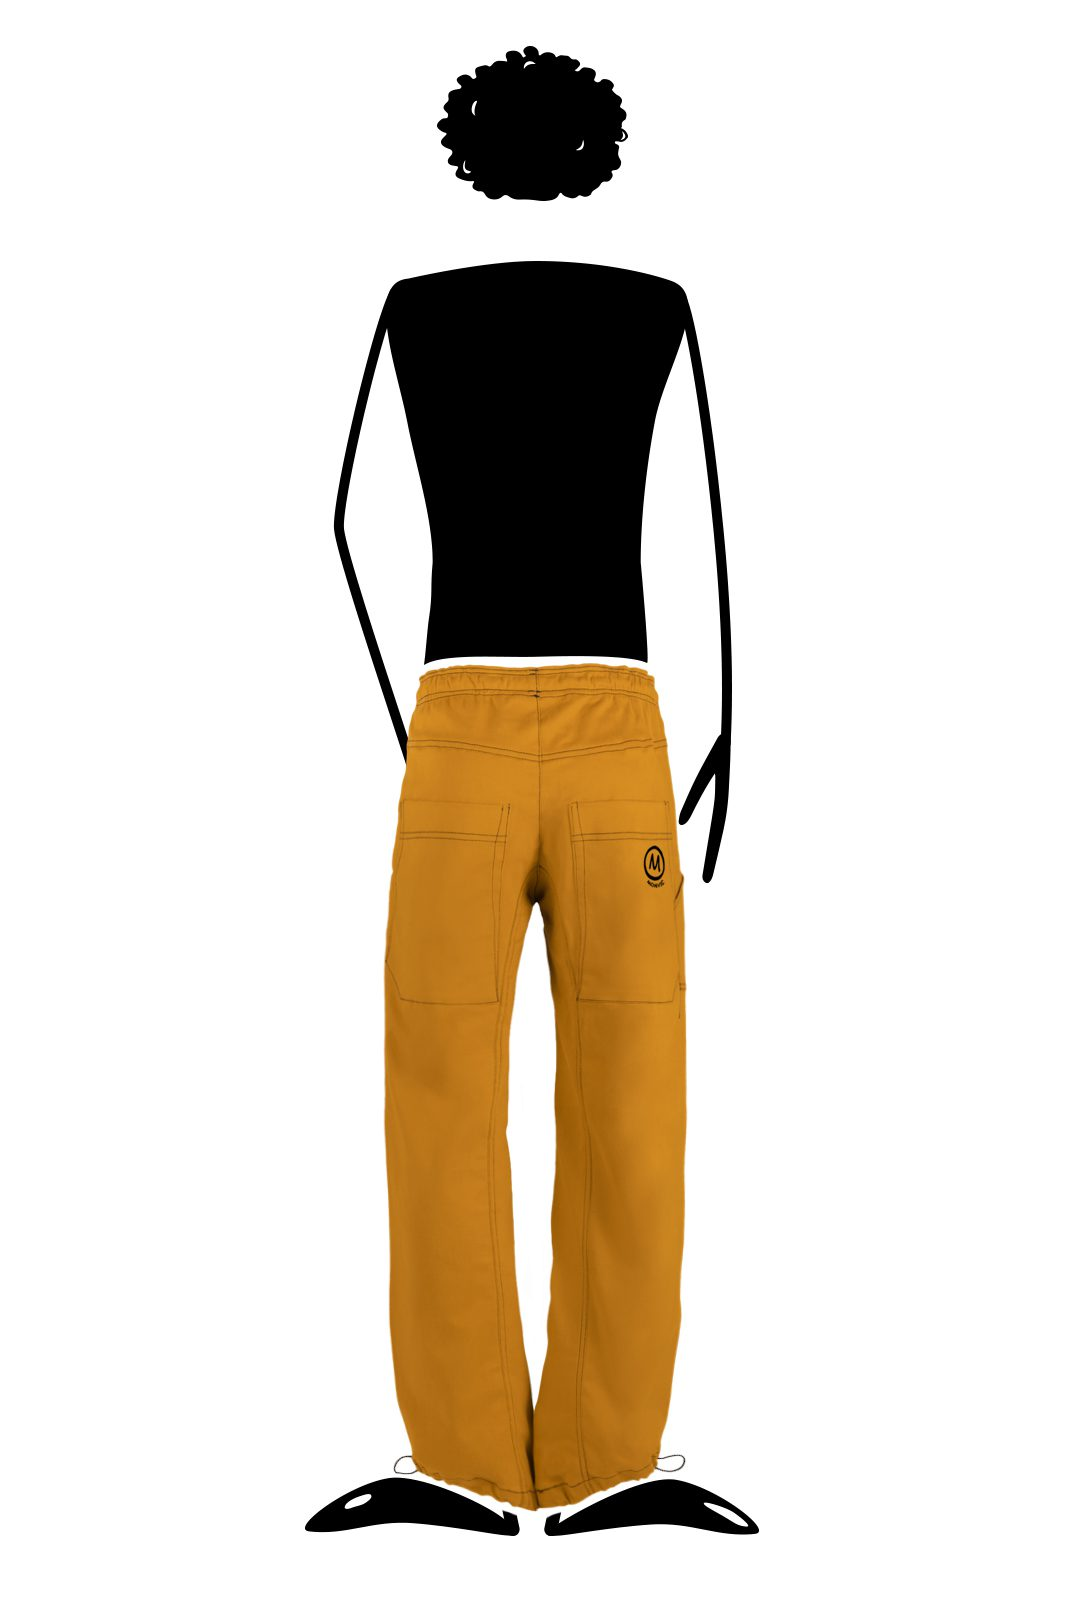 Men's Sports trousers yellow ocher extra-light JIMMY Monvic